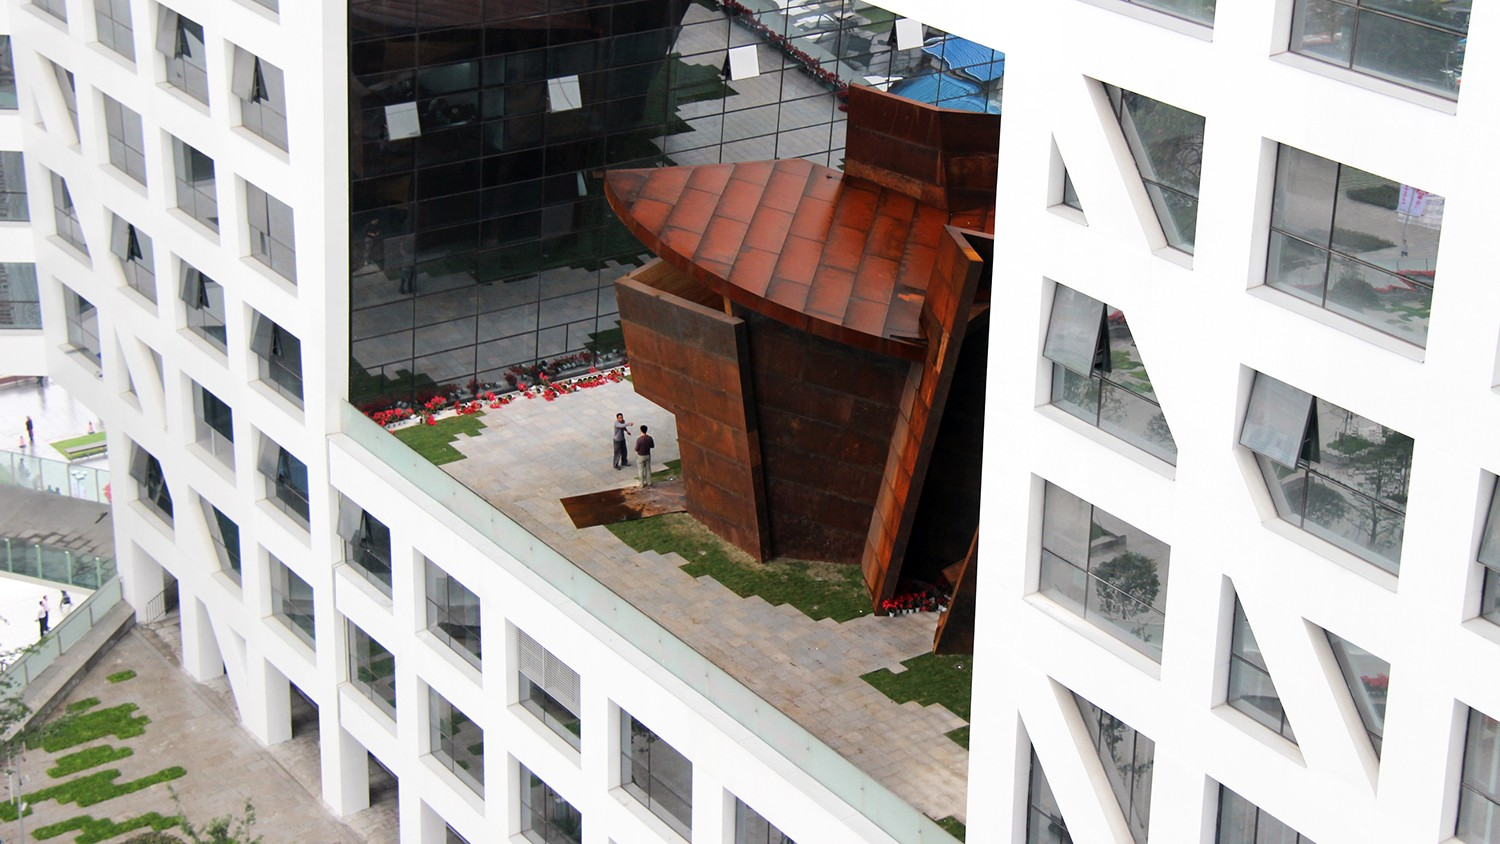 https://s3.us-east-2.amazonaws.com/steven-holl/uploads/projects/project-images/StevenHollArchitects_Chengdu_IMG_2750_WH.jpg